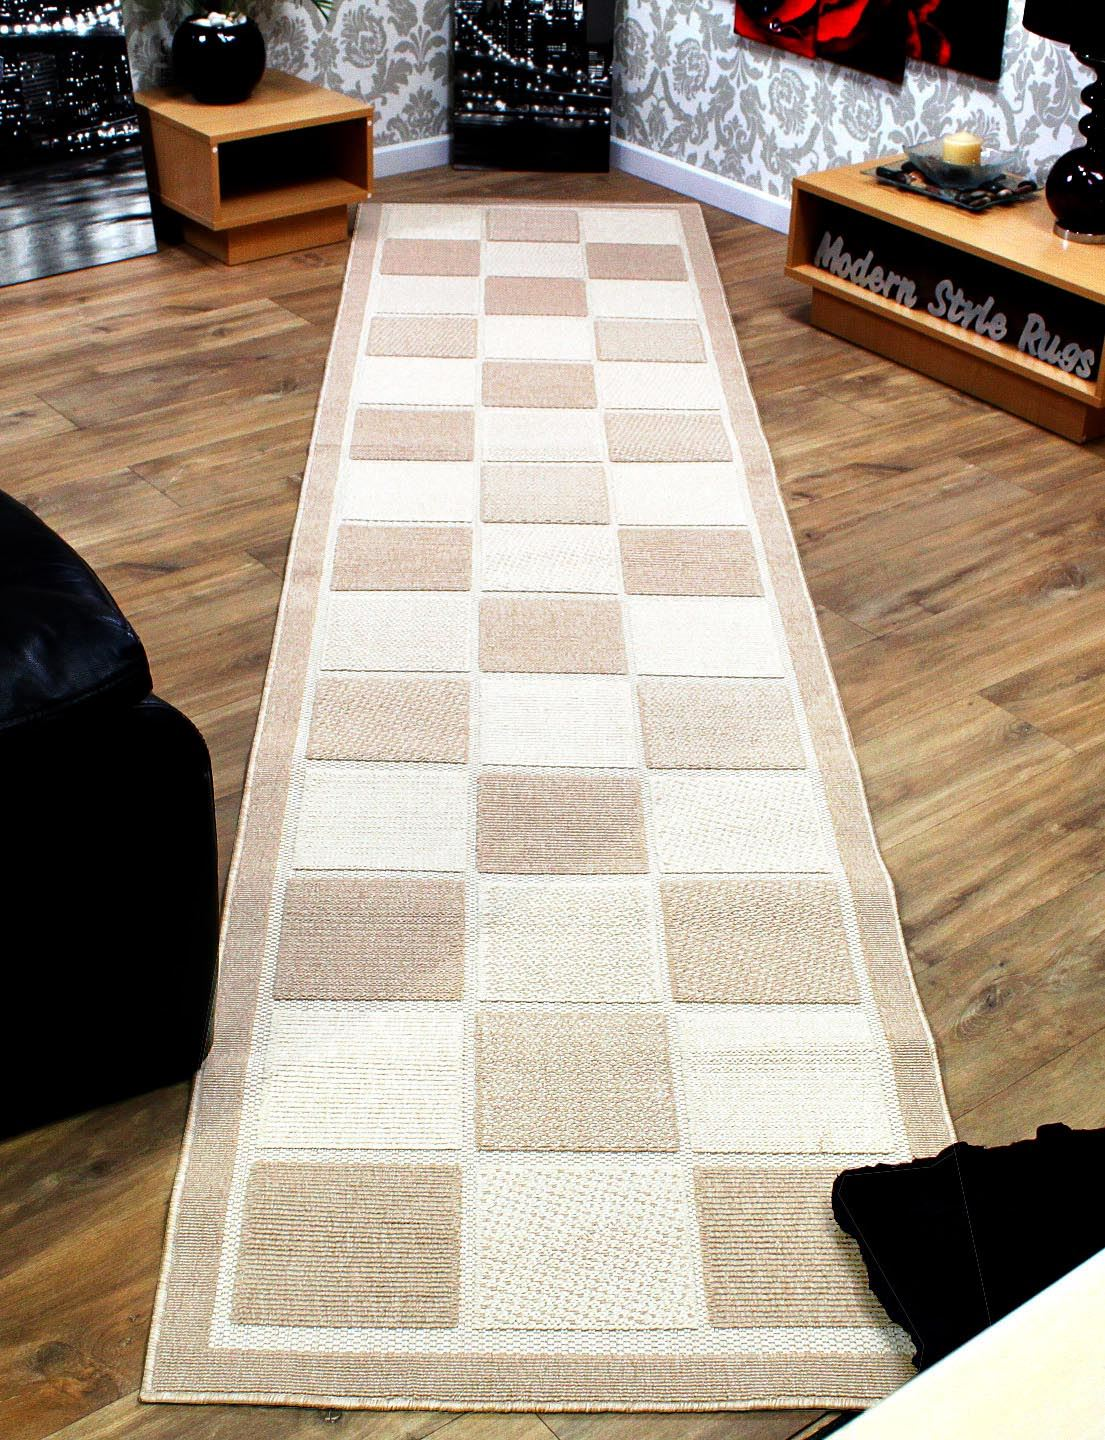 Checkered Brown or Cream Extra Long  Extra Wide Hallway Runner Rug 80x340cm  eBay